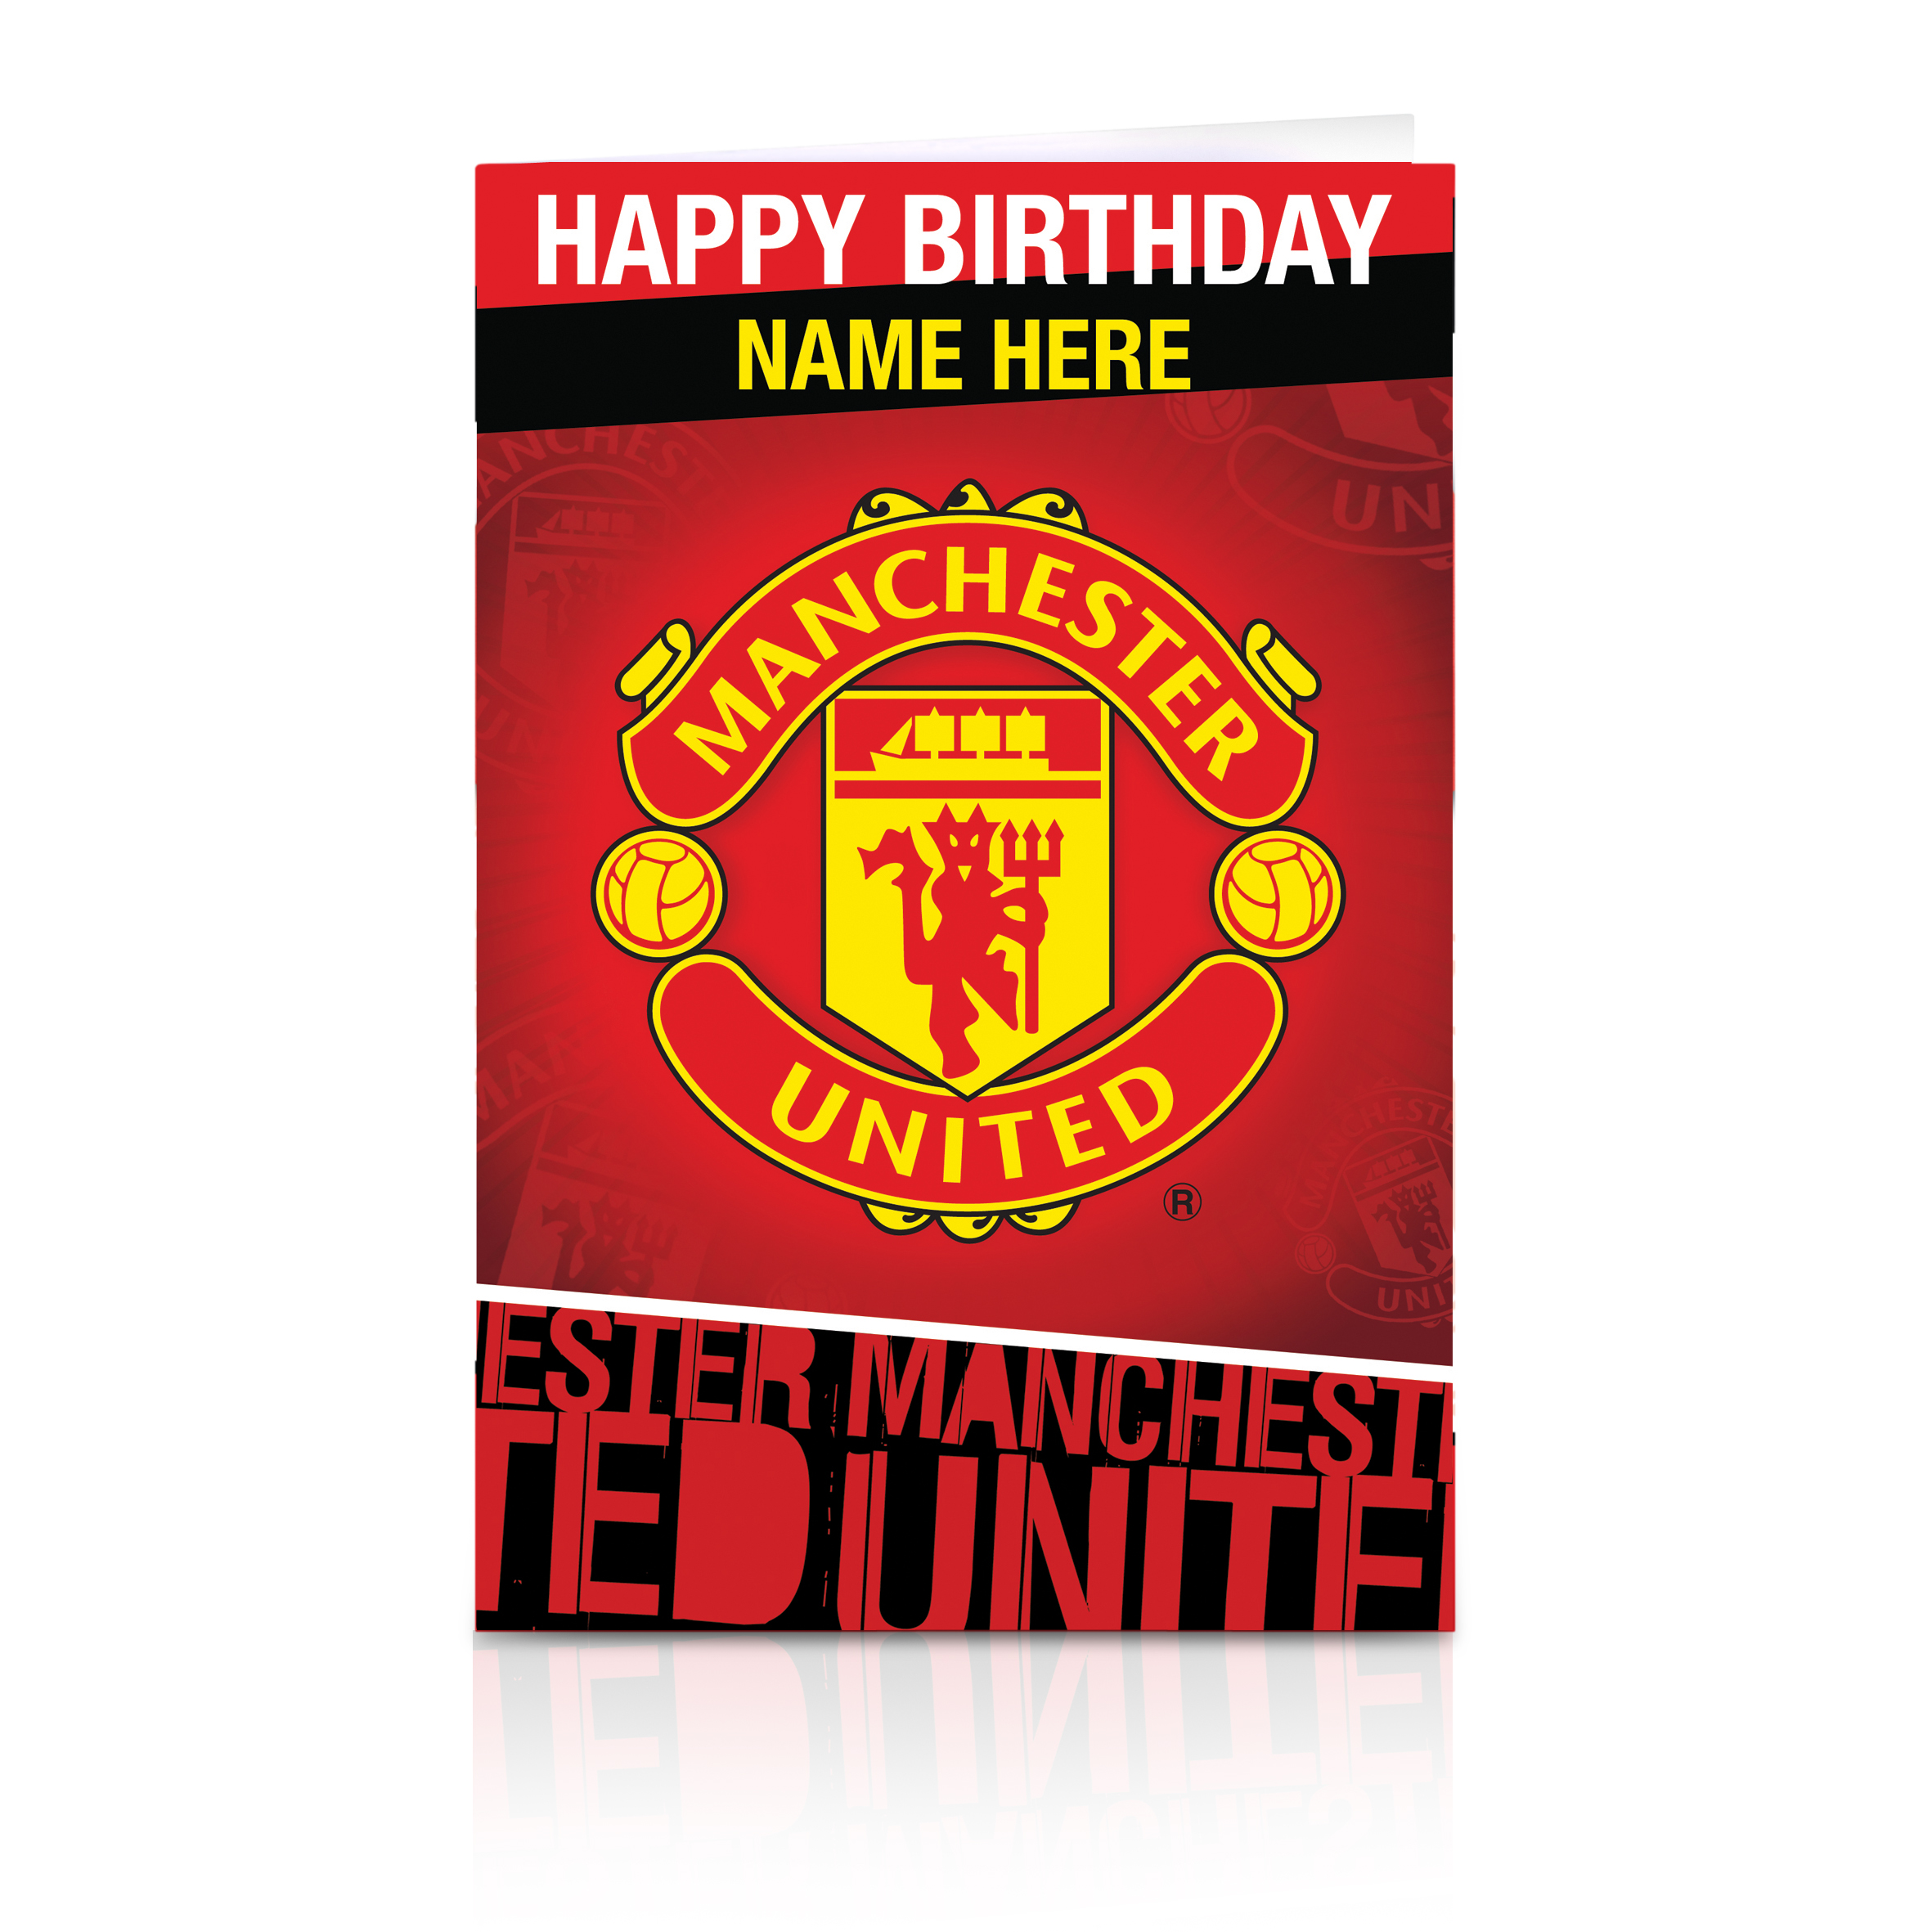 Manchester United Personalised Happy Birthday Card - Crest